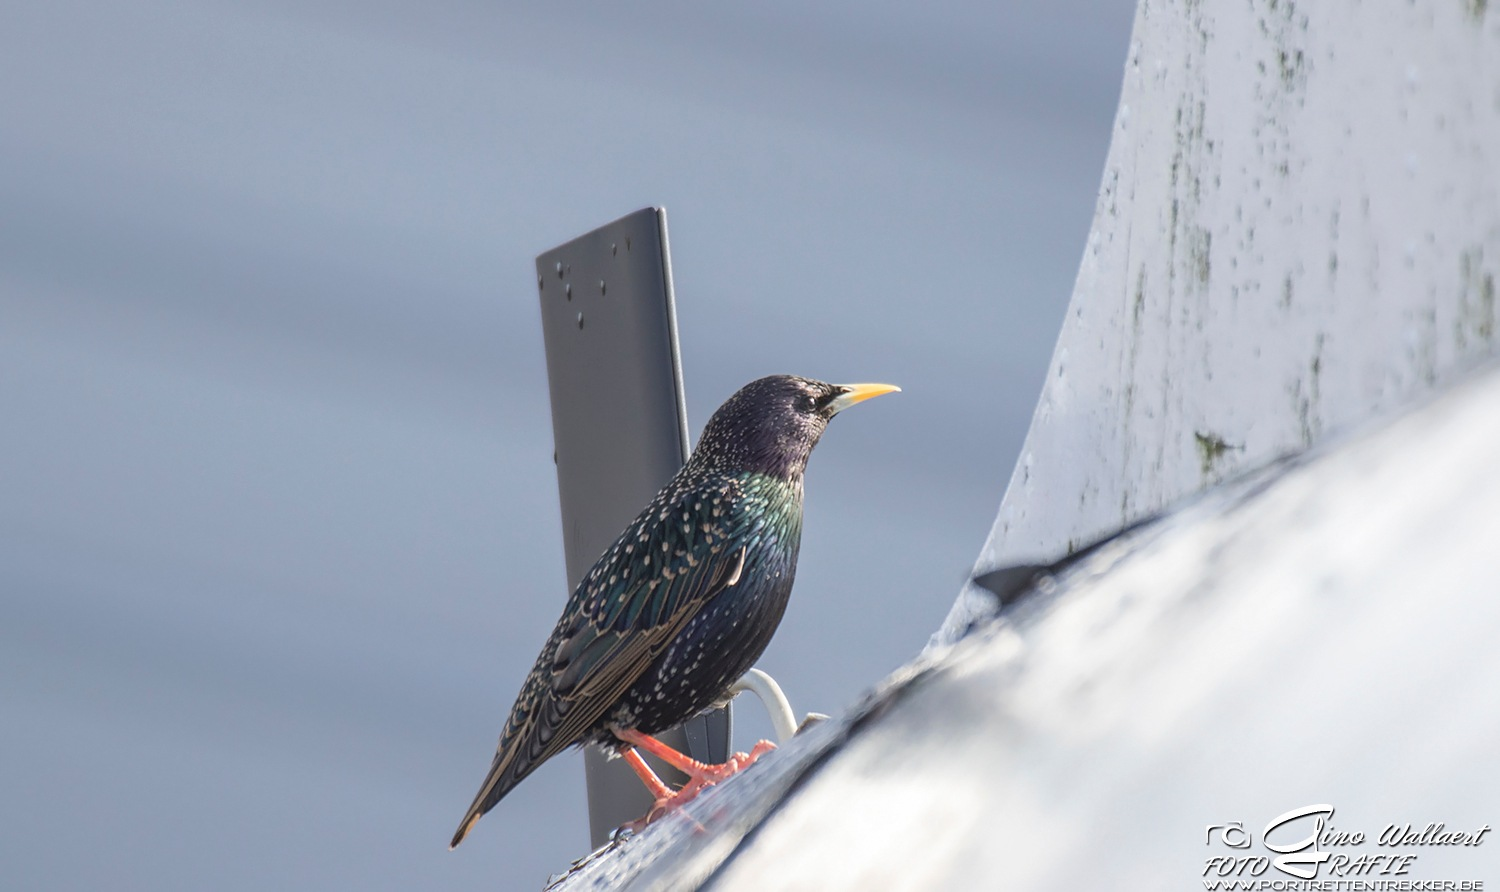 Starling by Gino Wallaert